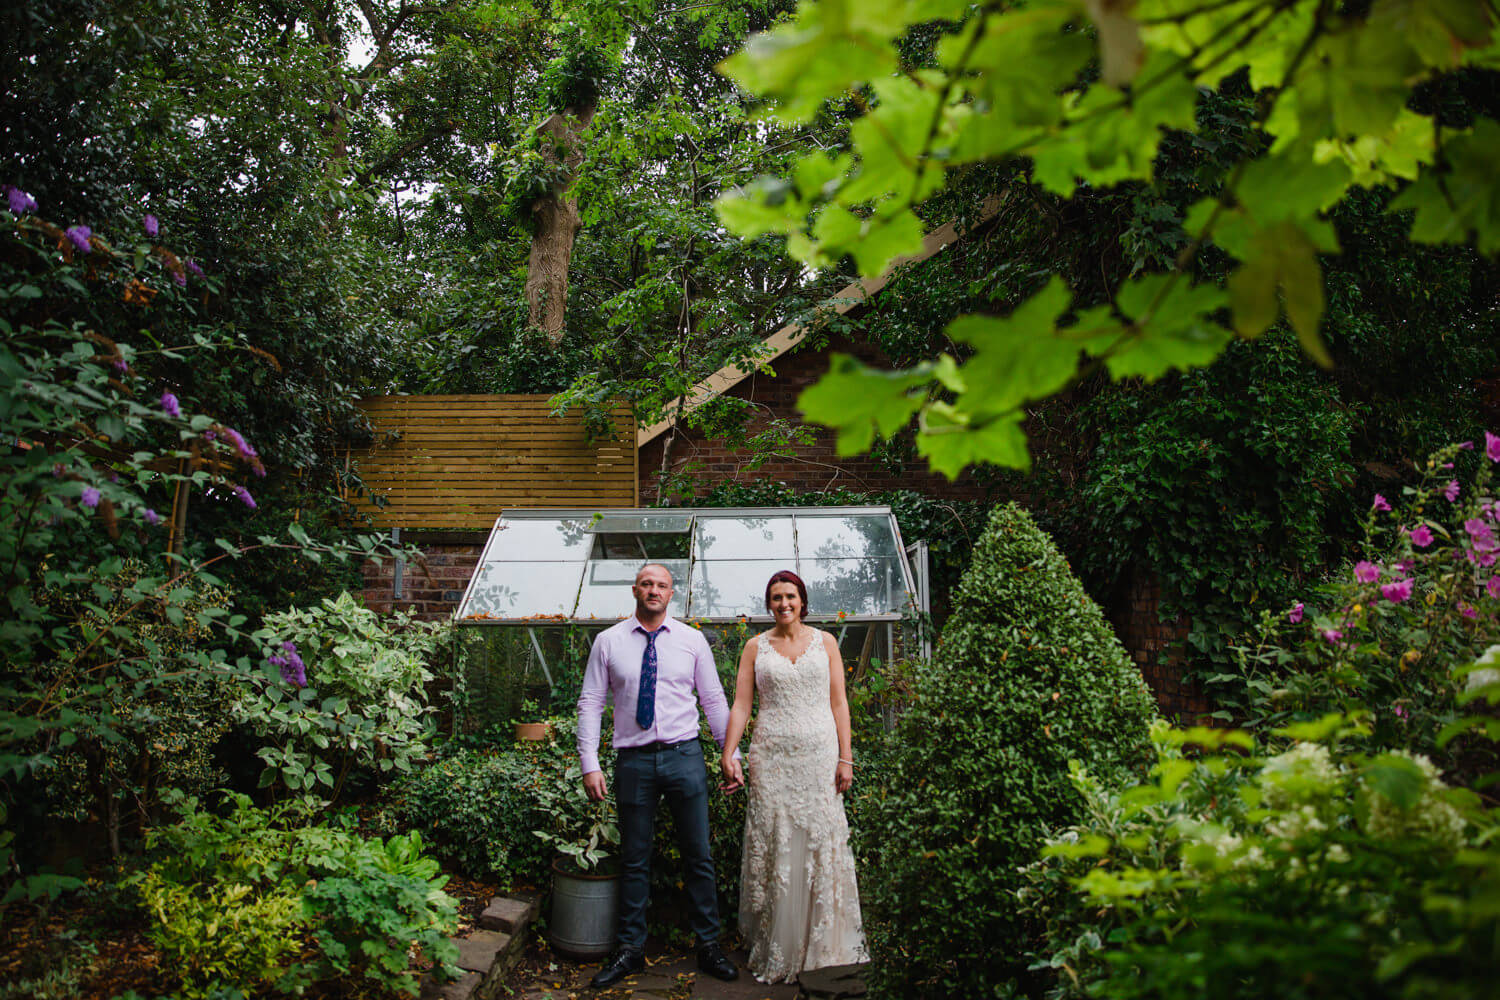 newlyweds pose holding hands in front of greenhouse